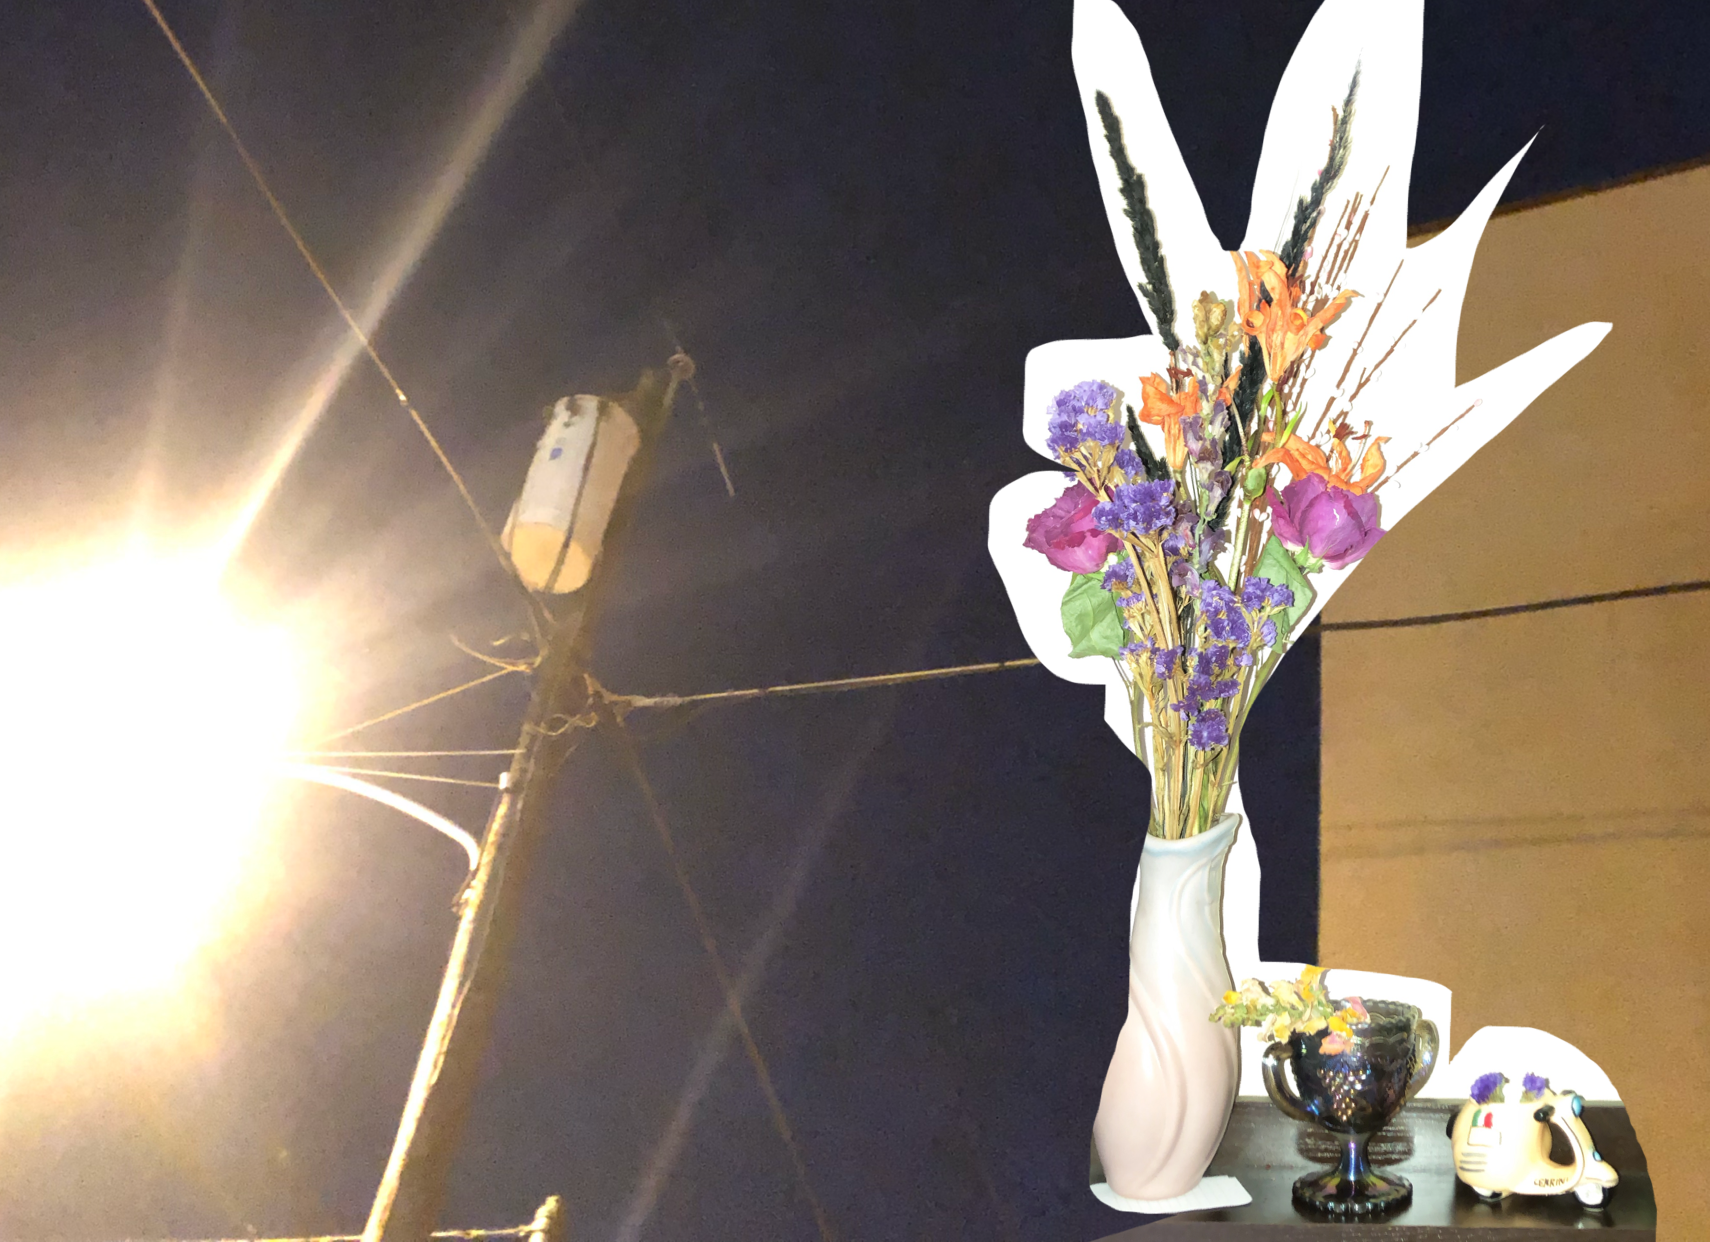 street lights and flowers.png